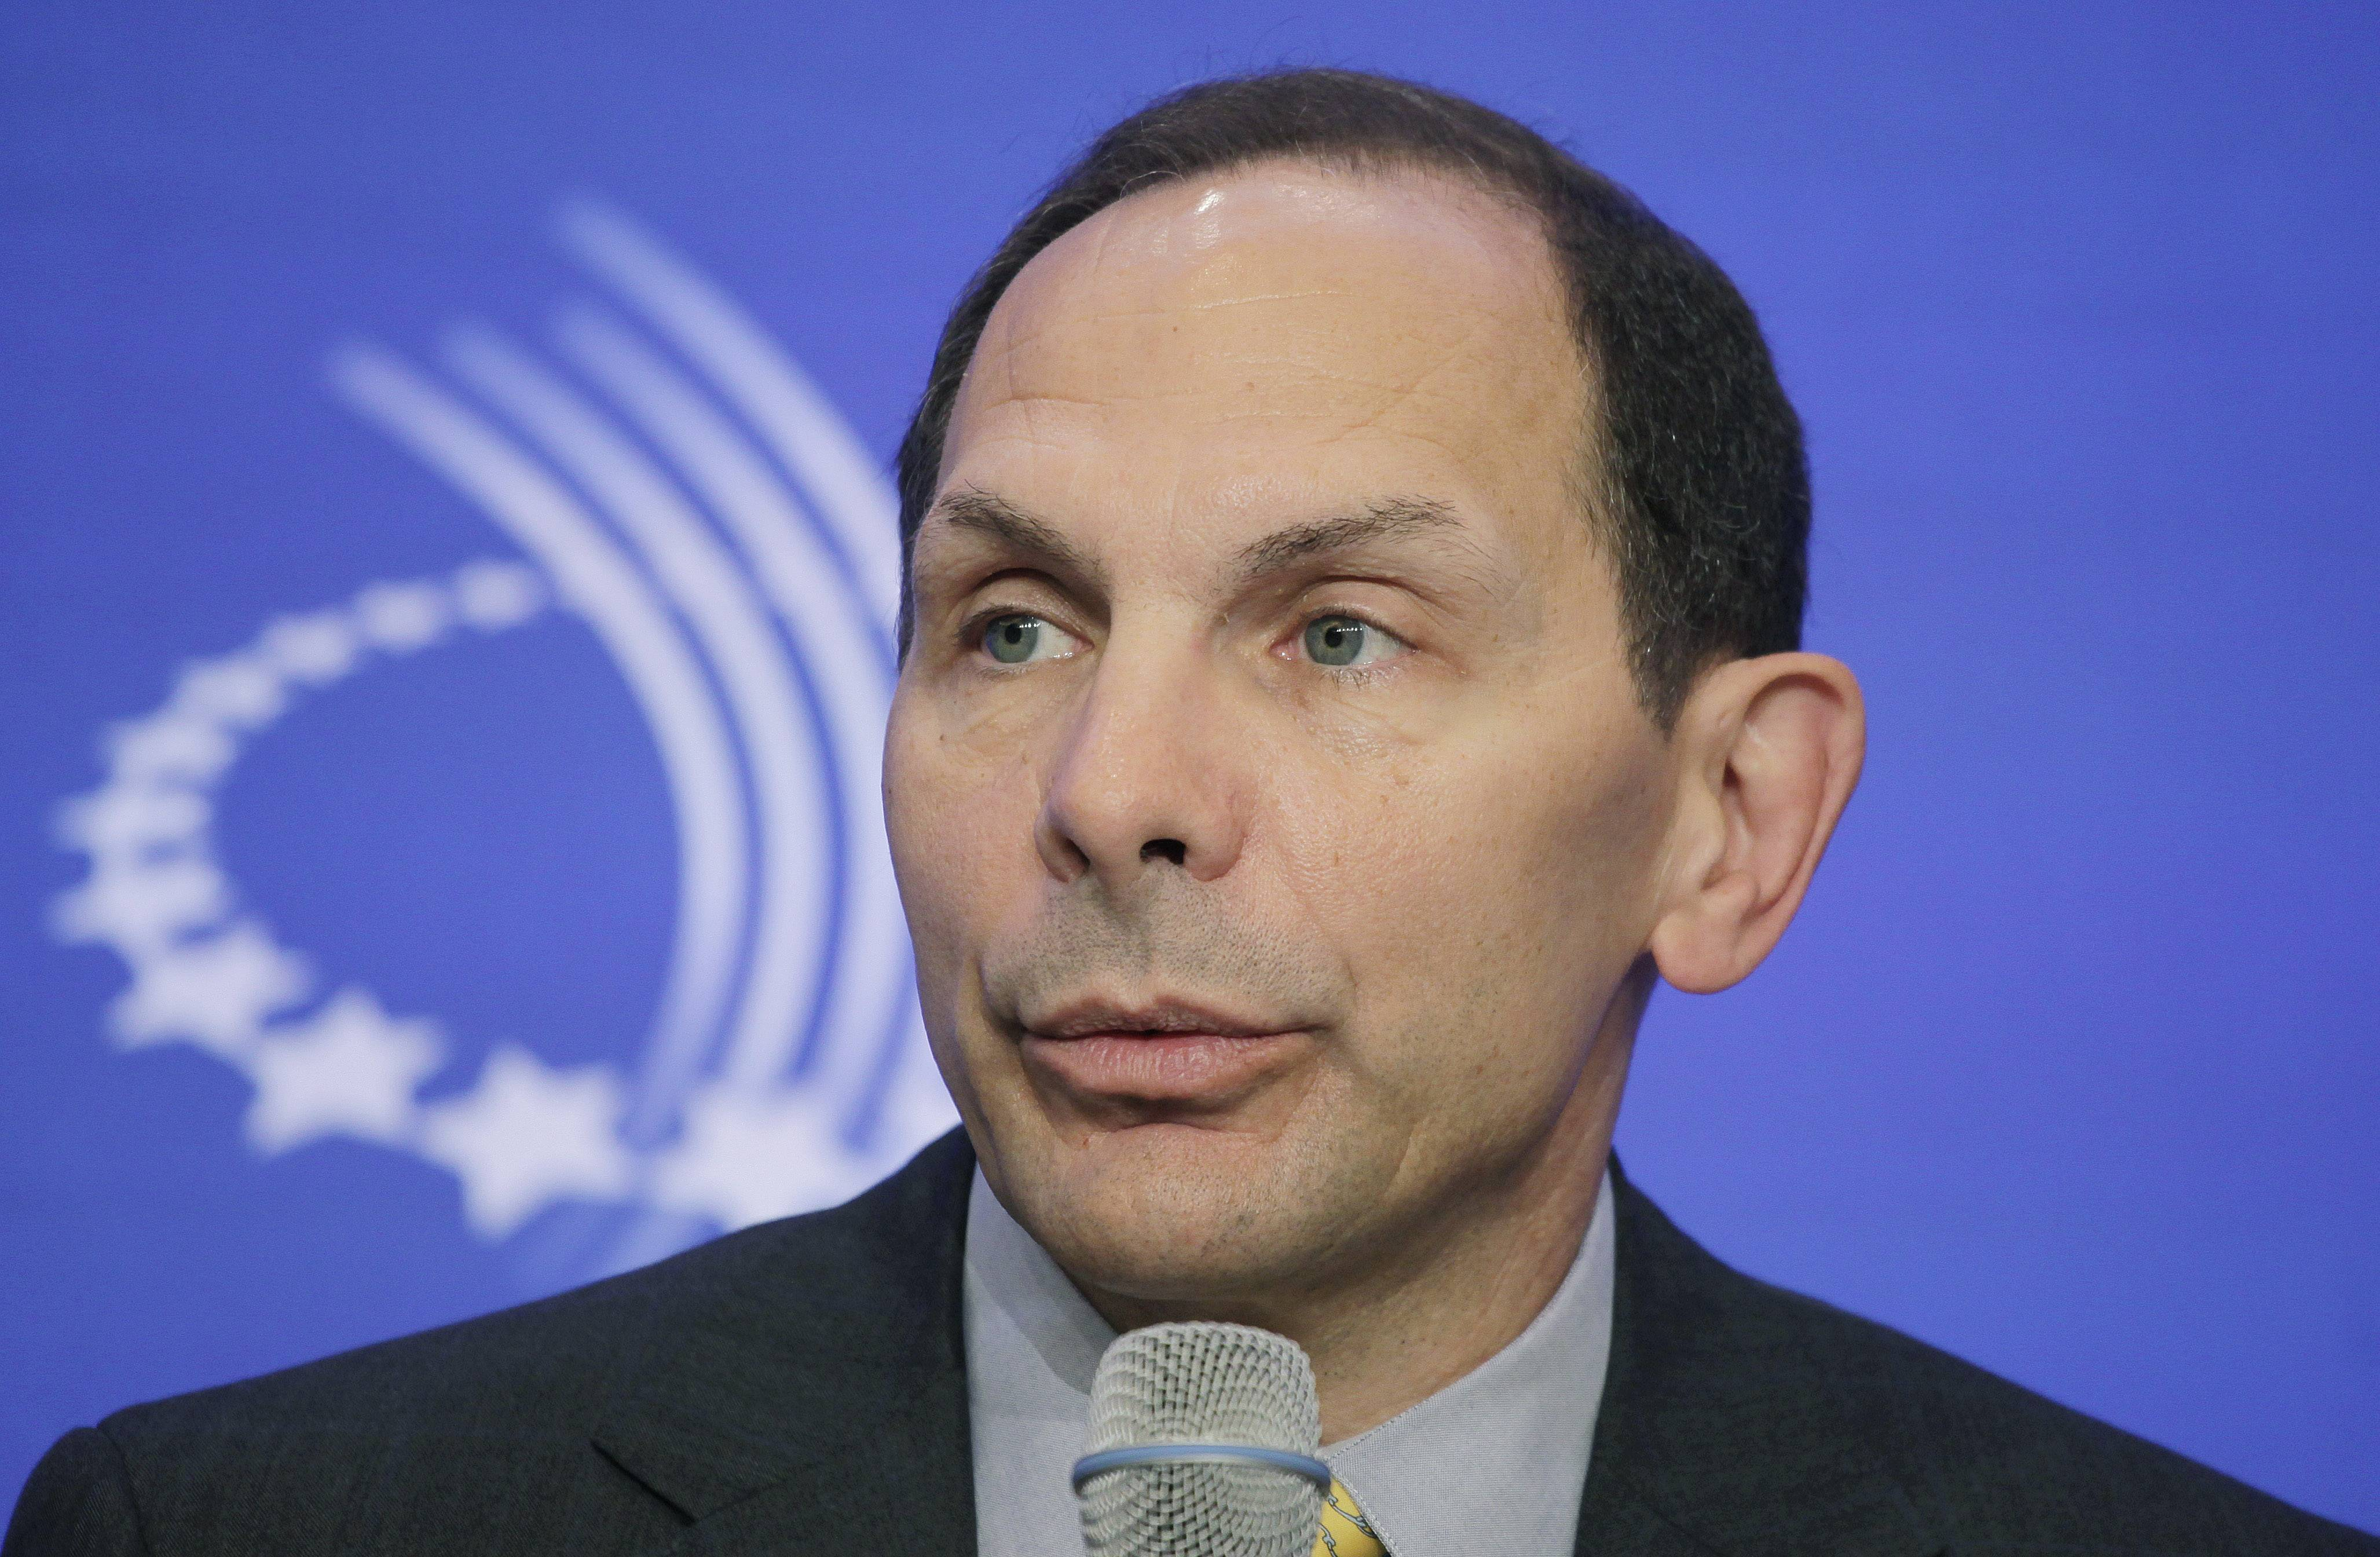 Obama picks ex-P&G head to lead Veterans Affairs